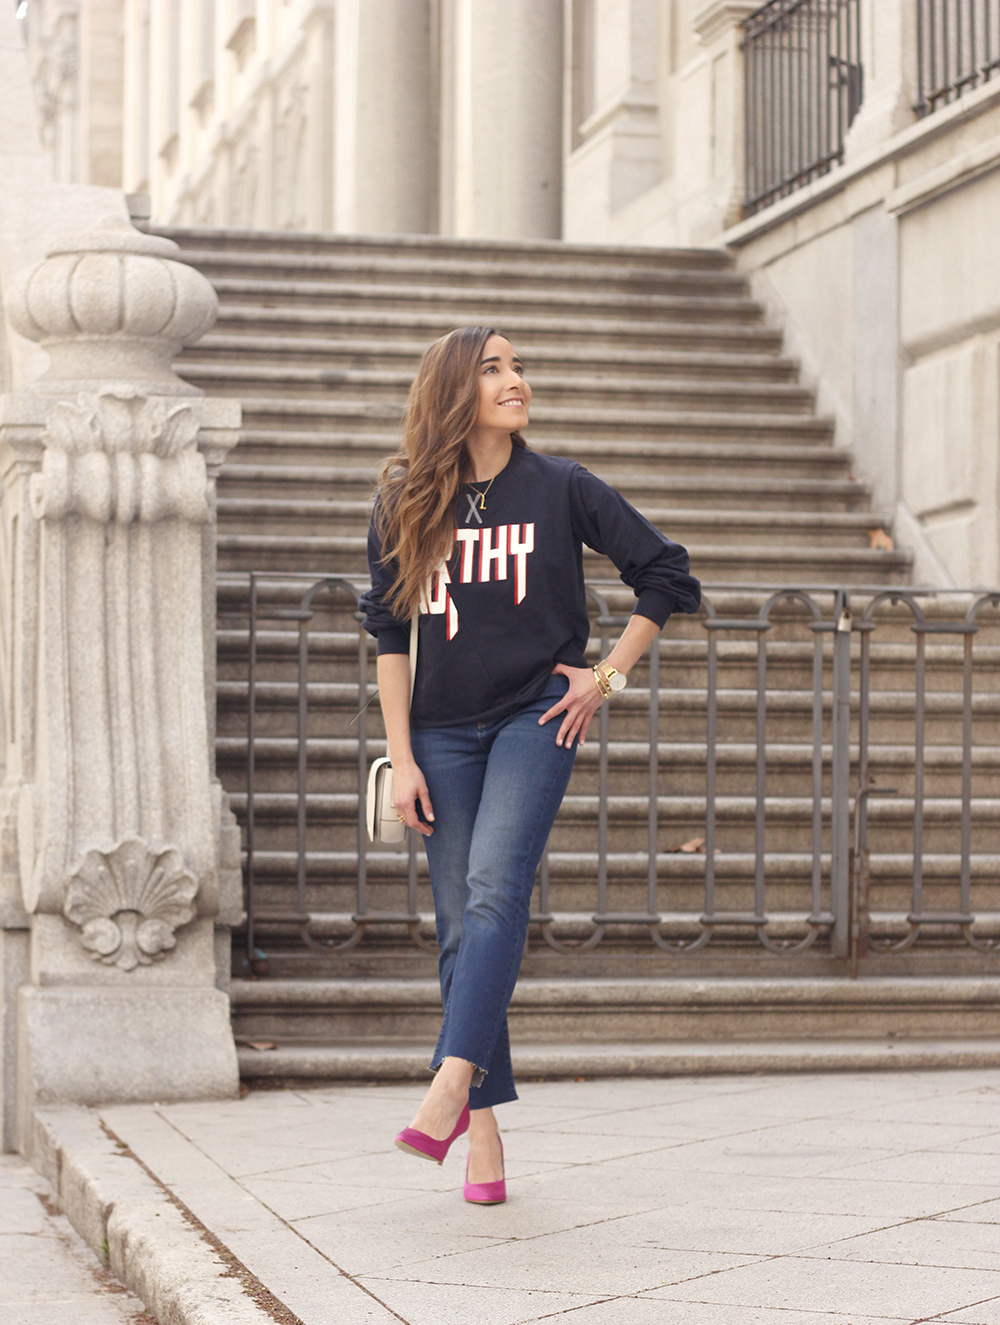 sweatshirt pink heels jeans find amazon fashion street style outfit 20192